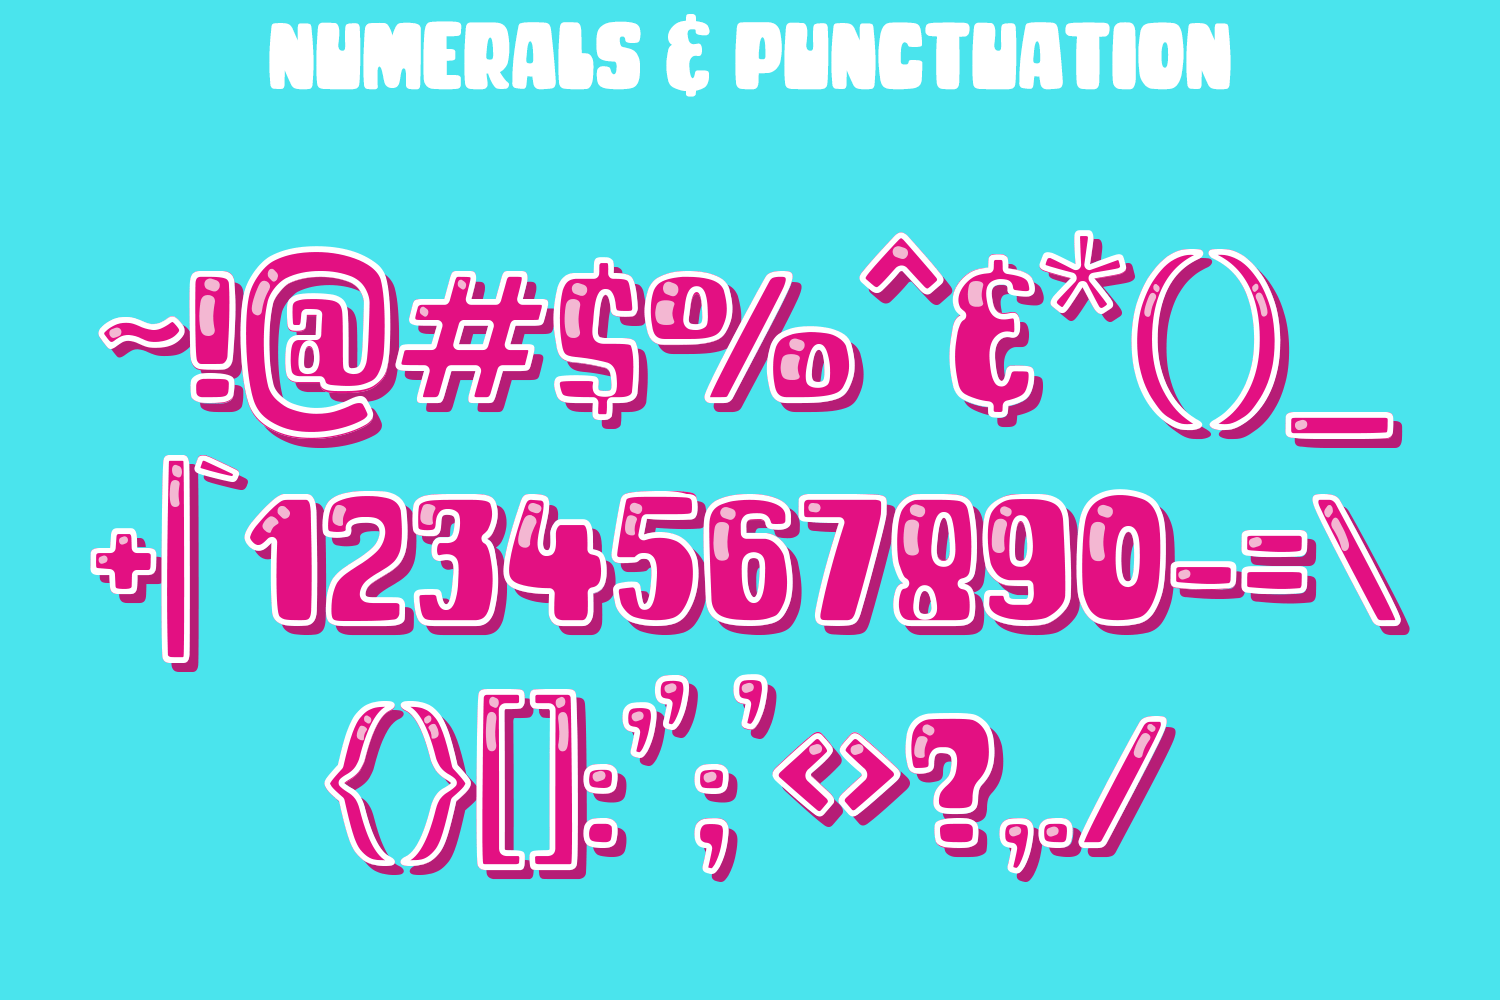 NUMERALS & PUNCTUATION CHAR SHEET